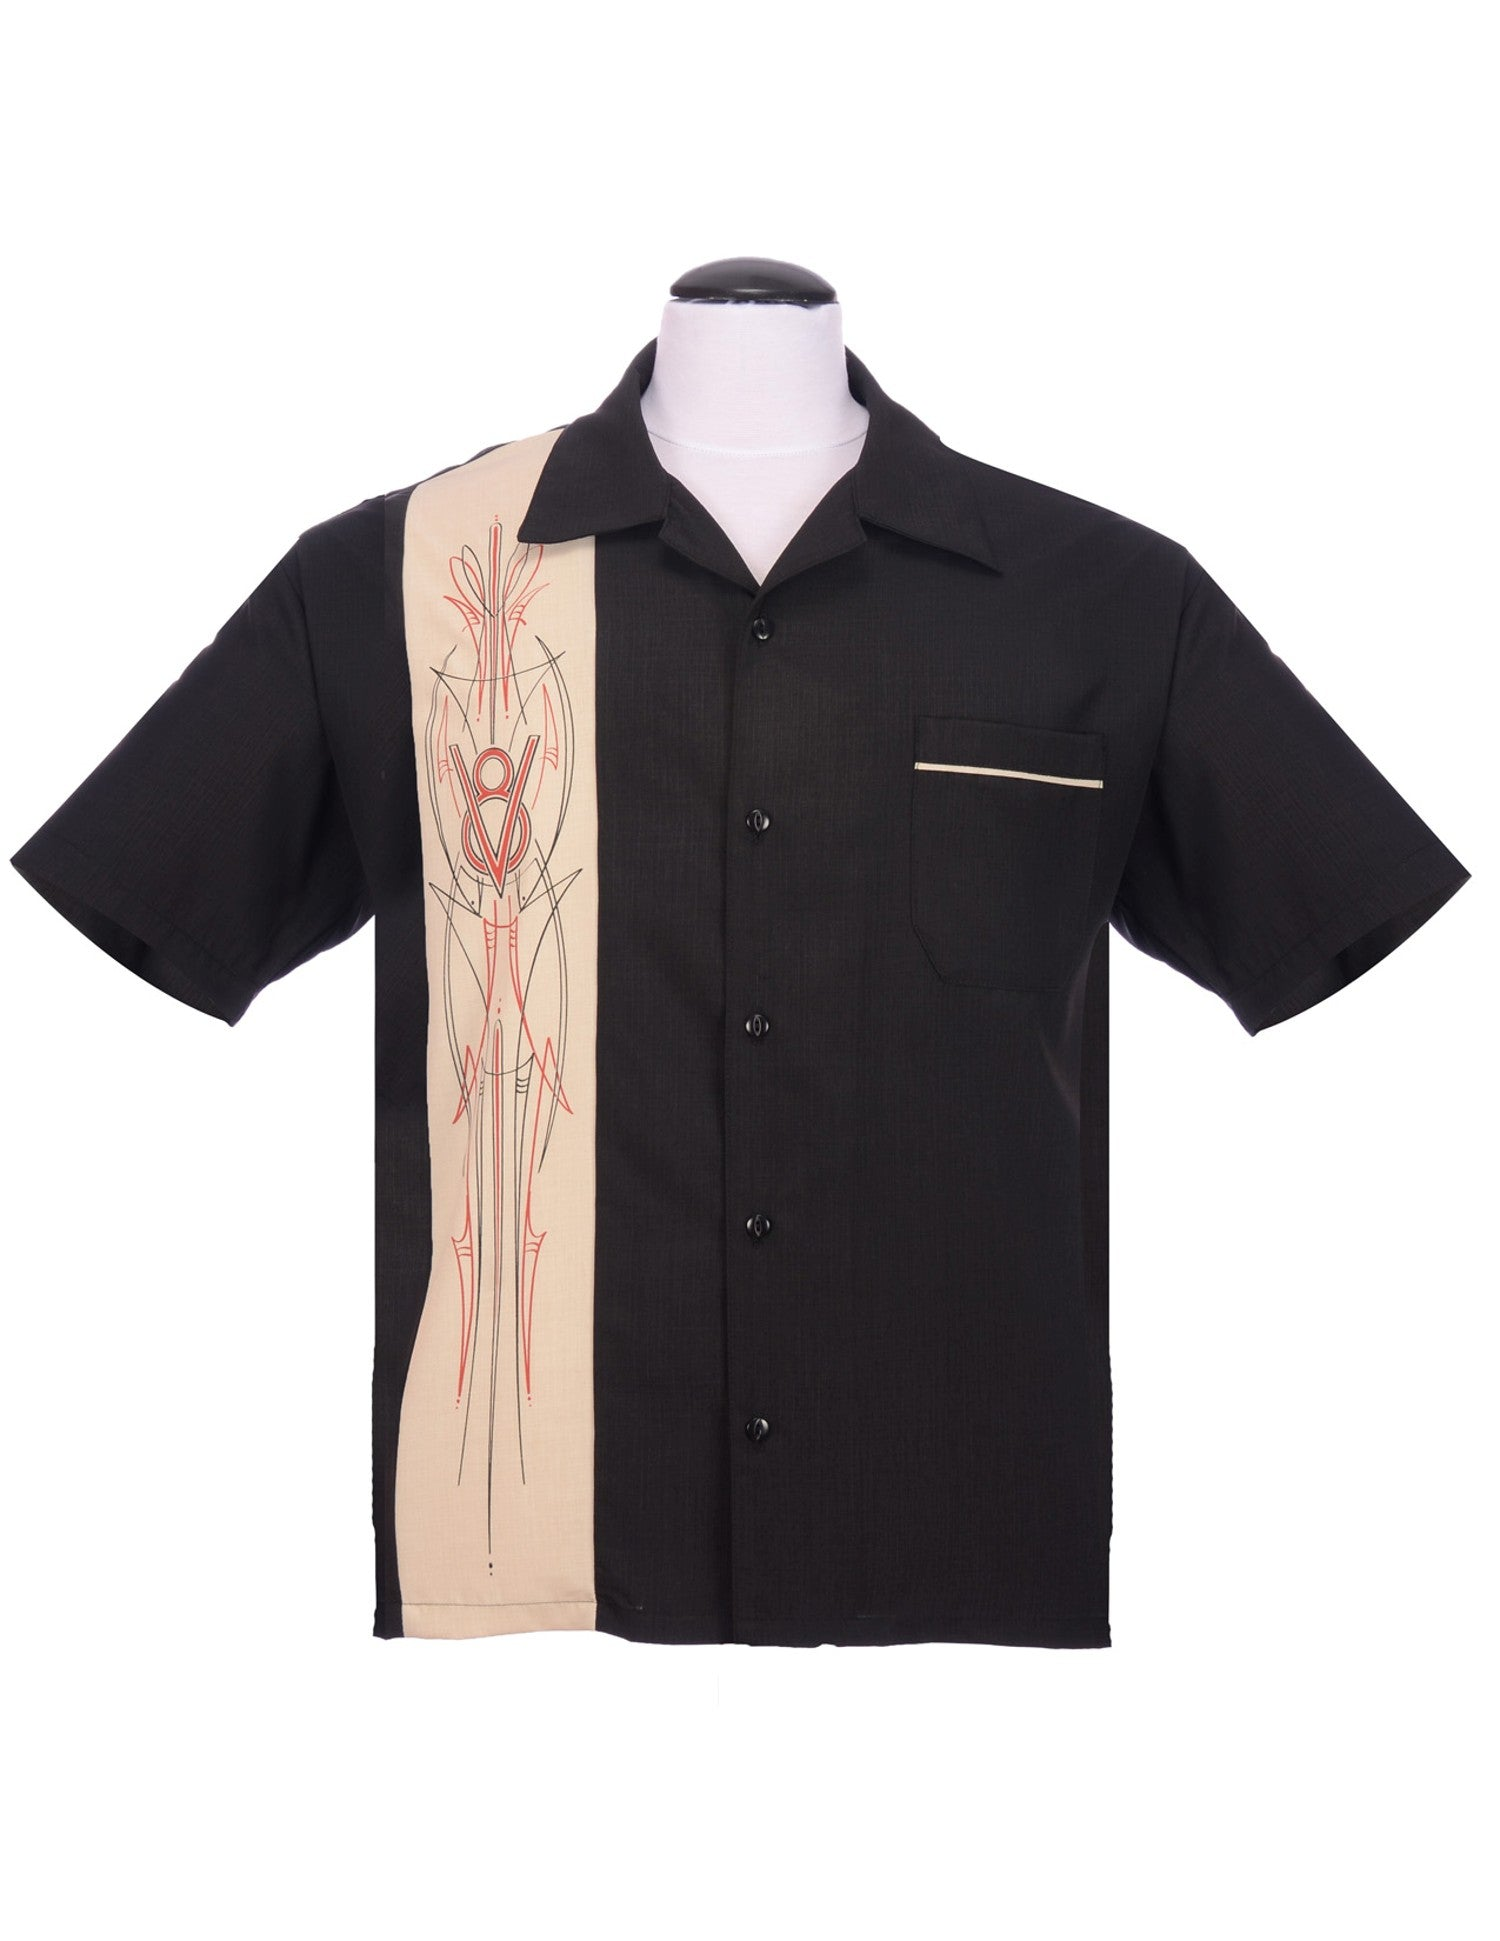 Steady V8 Pinstripe Panel Button Up in Black Stone Hot Rod Bowling Shirt Style